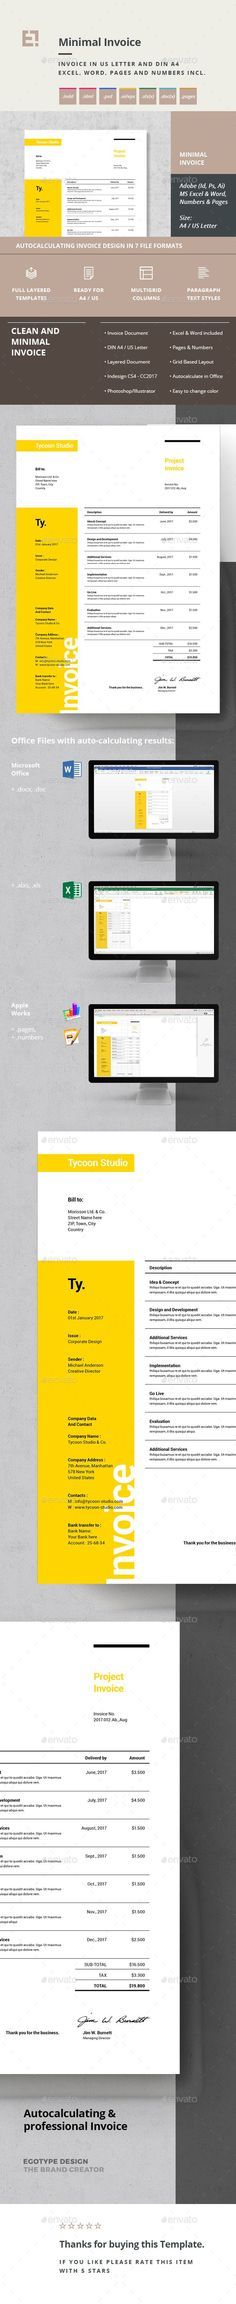 Invoice Template, Font logo and Logos